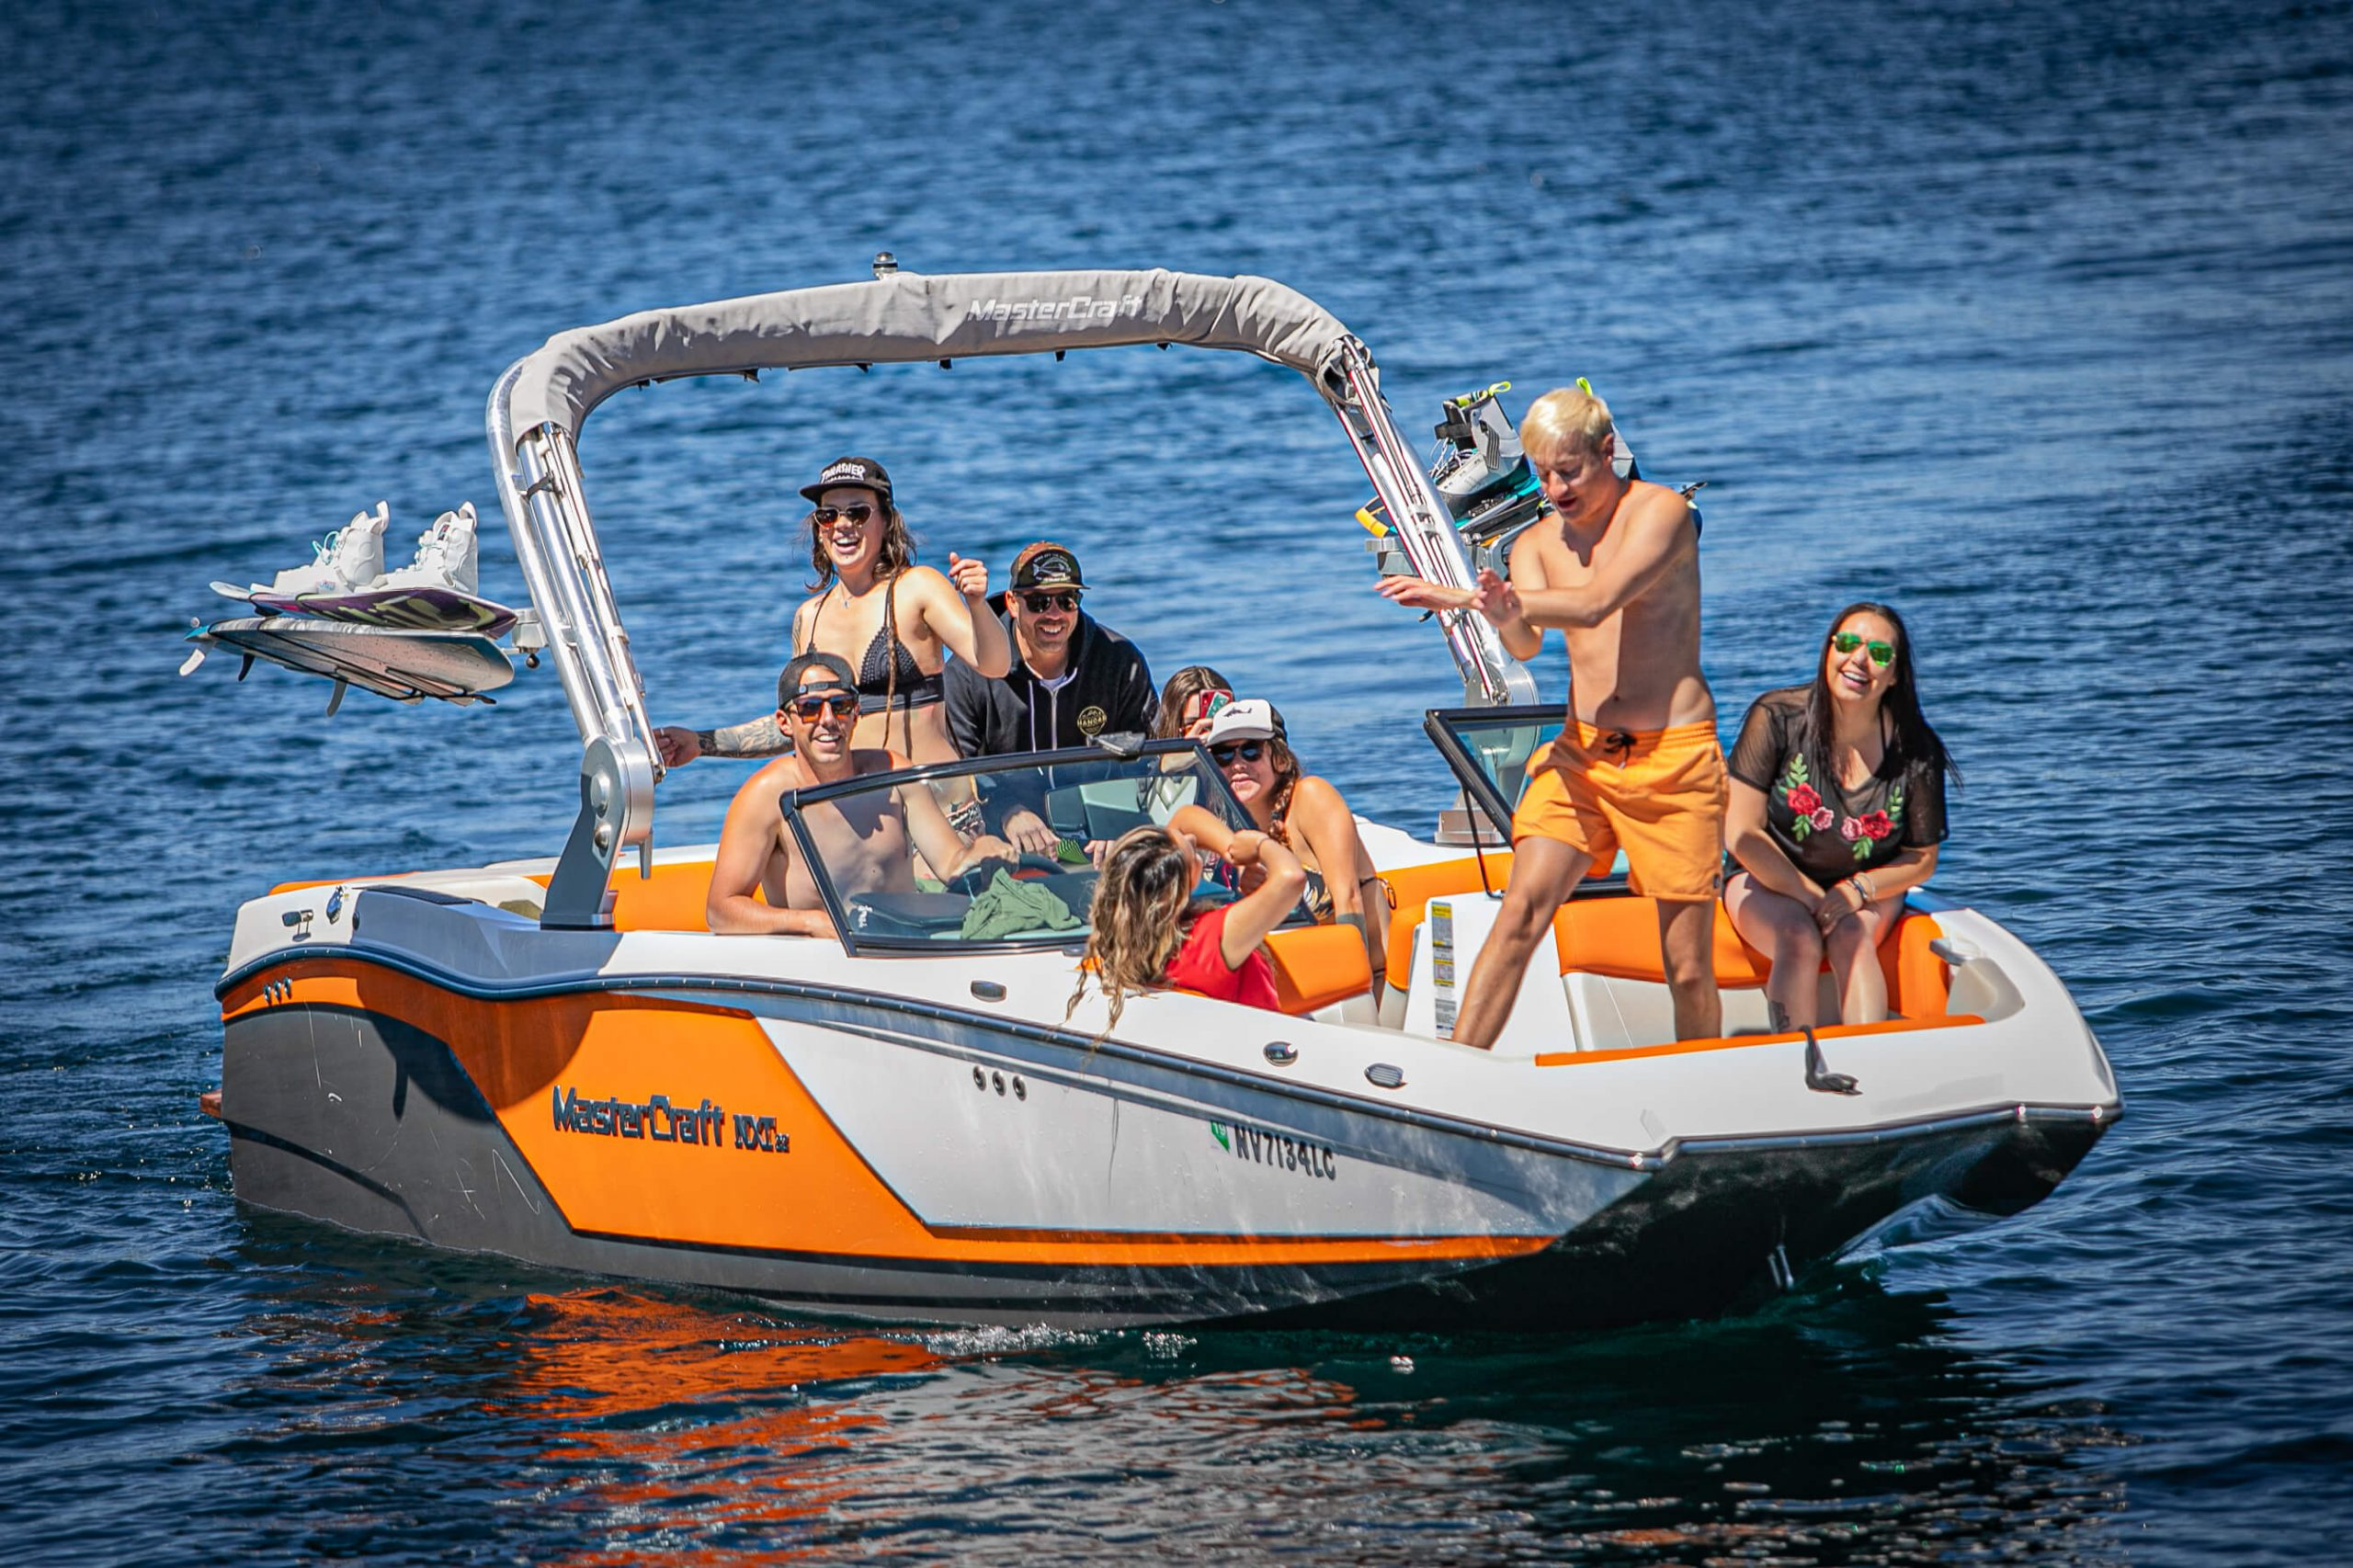 south lake tahoe boat rentals